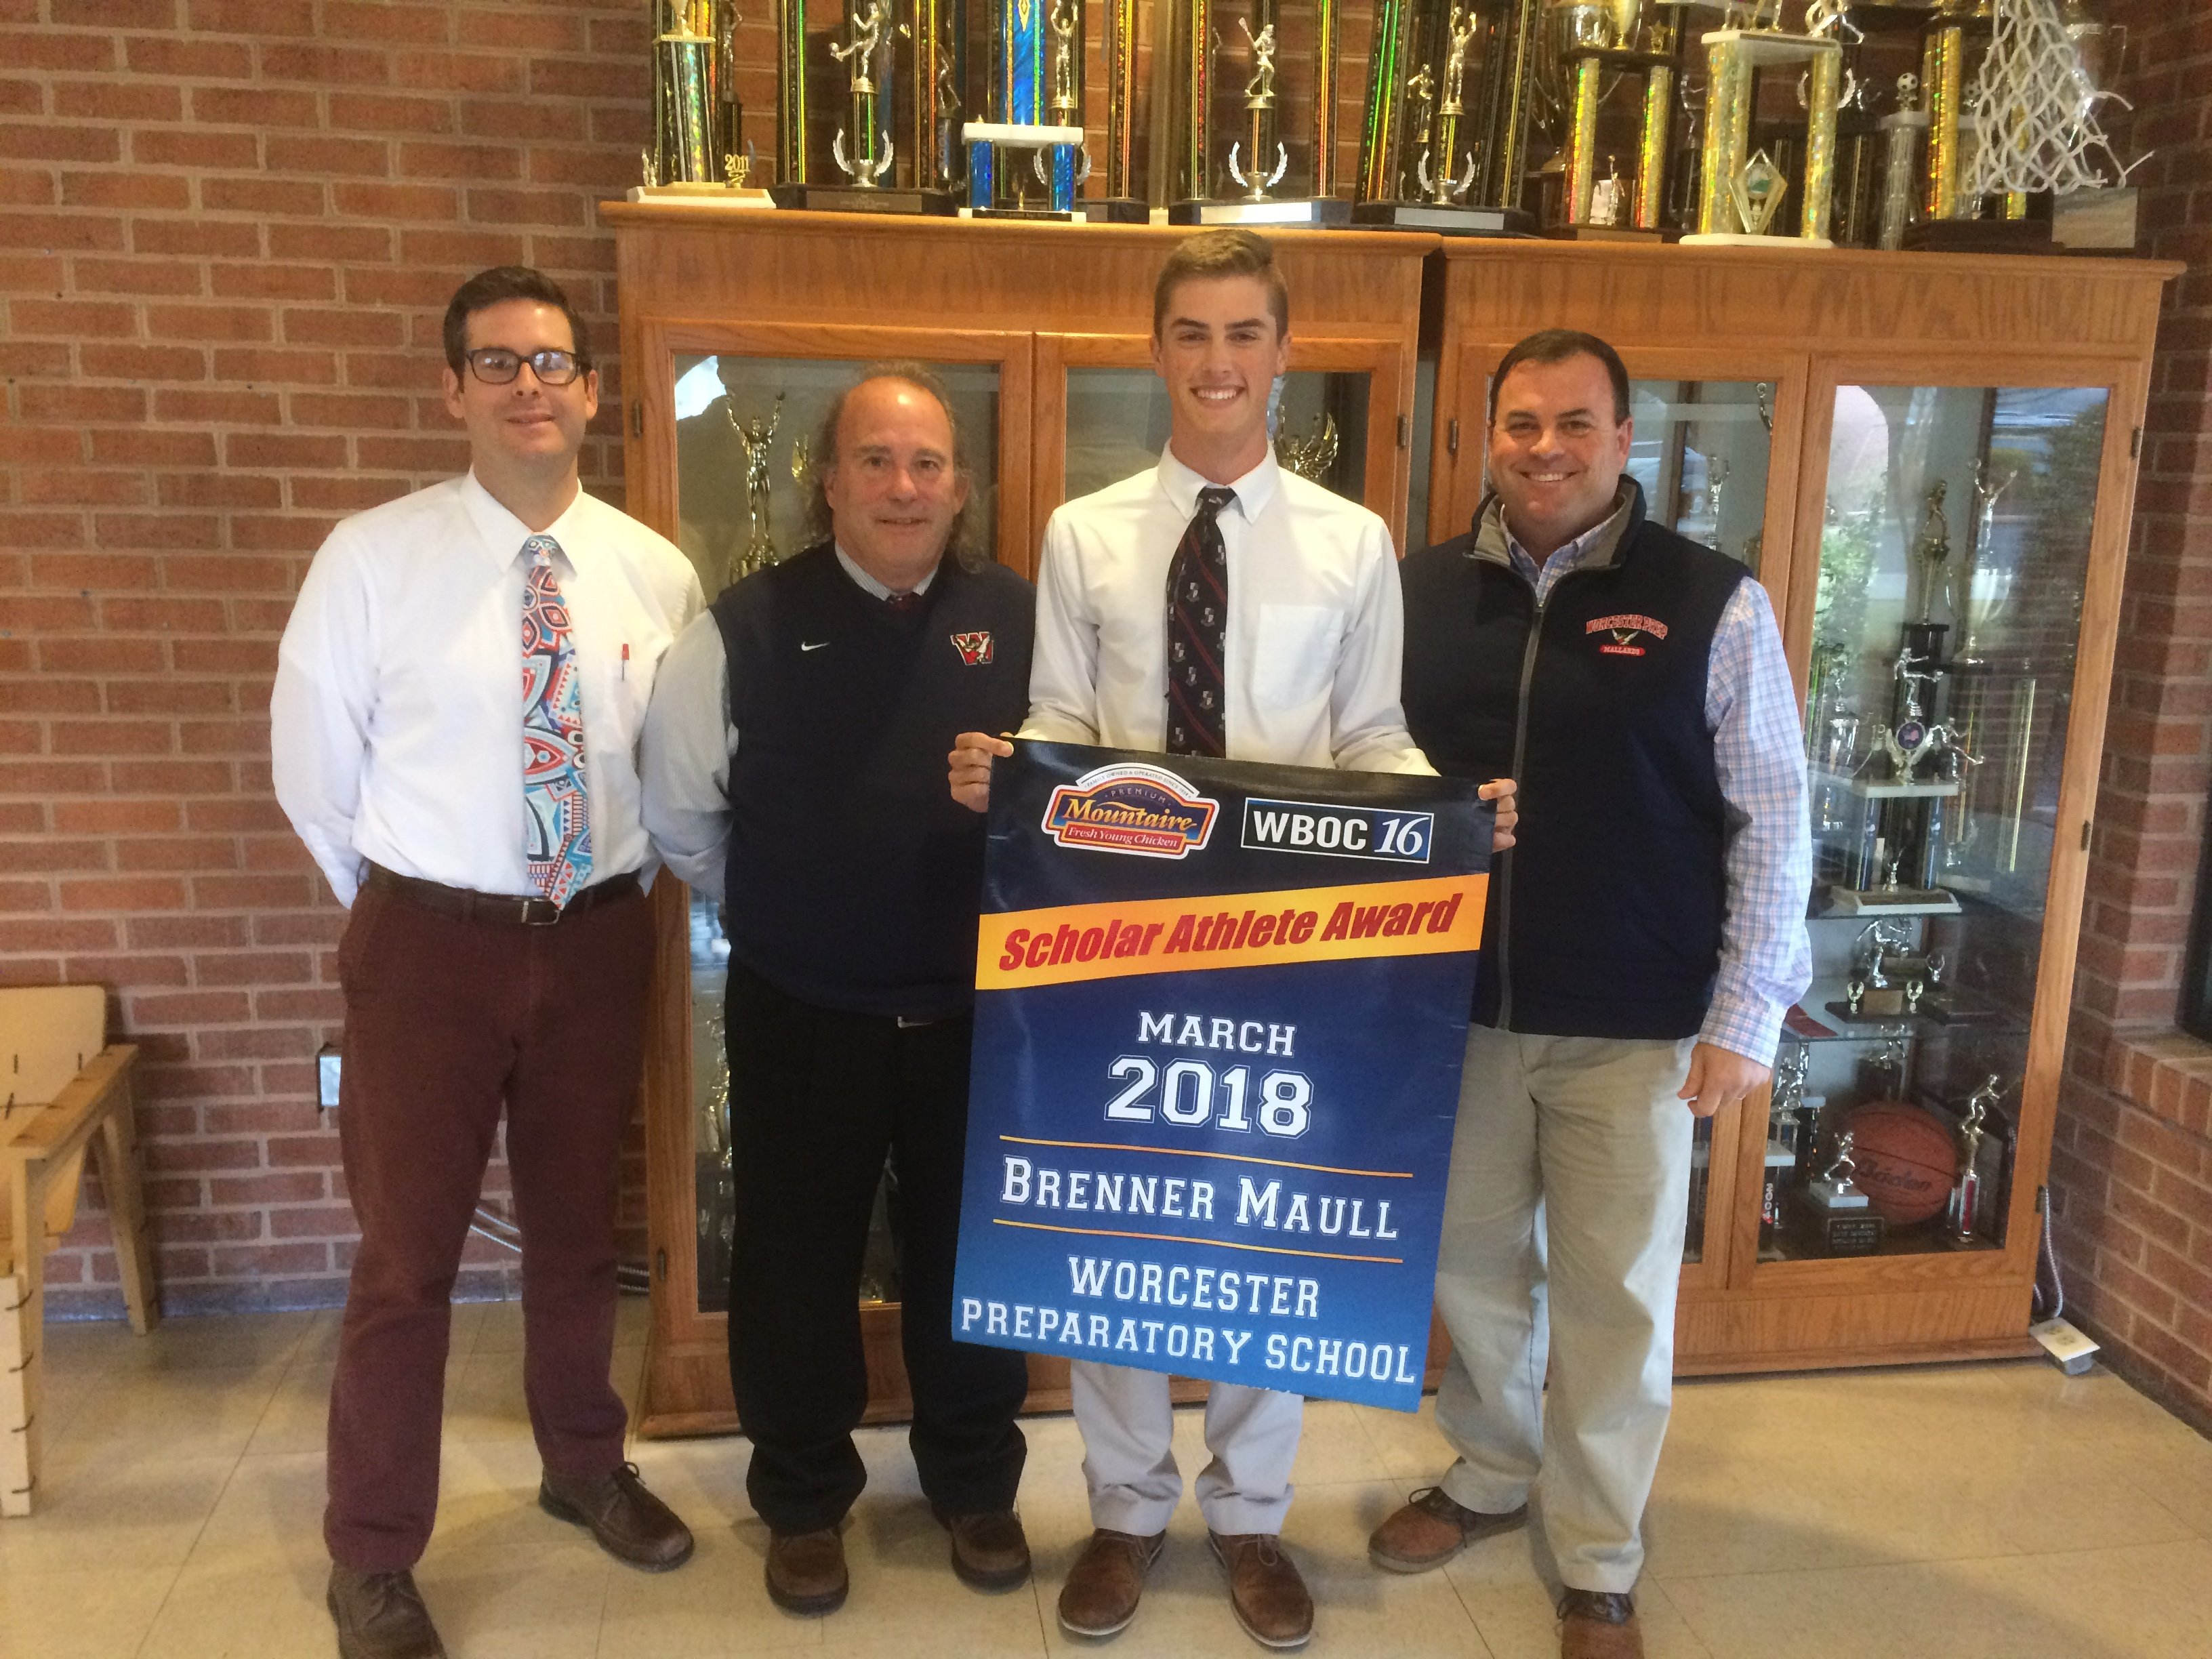 WBOC Mountaire Farms March Scholar Athlete of the Month – Brenner Maull of Worcester Prep